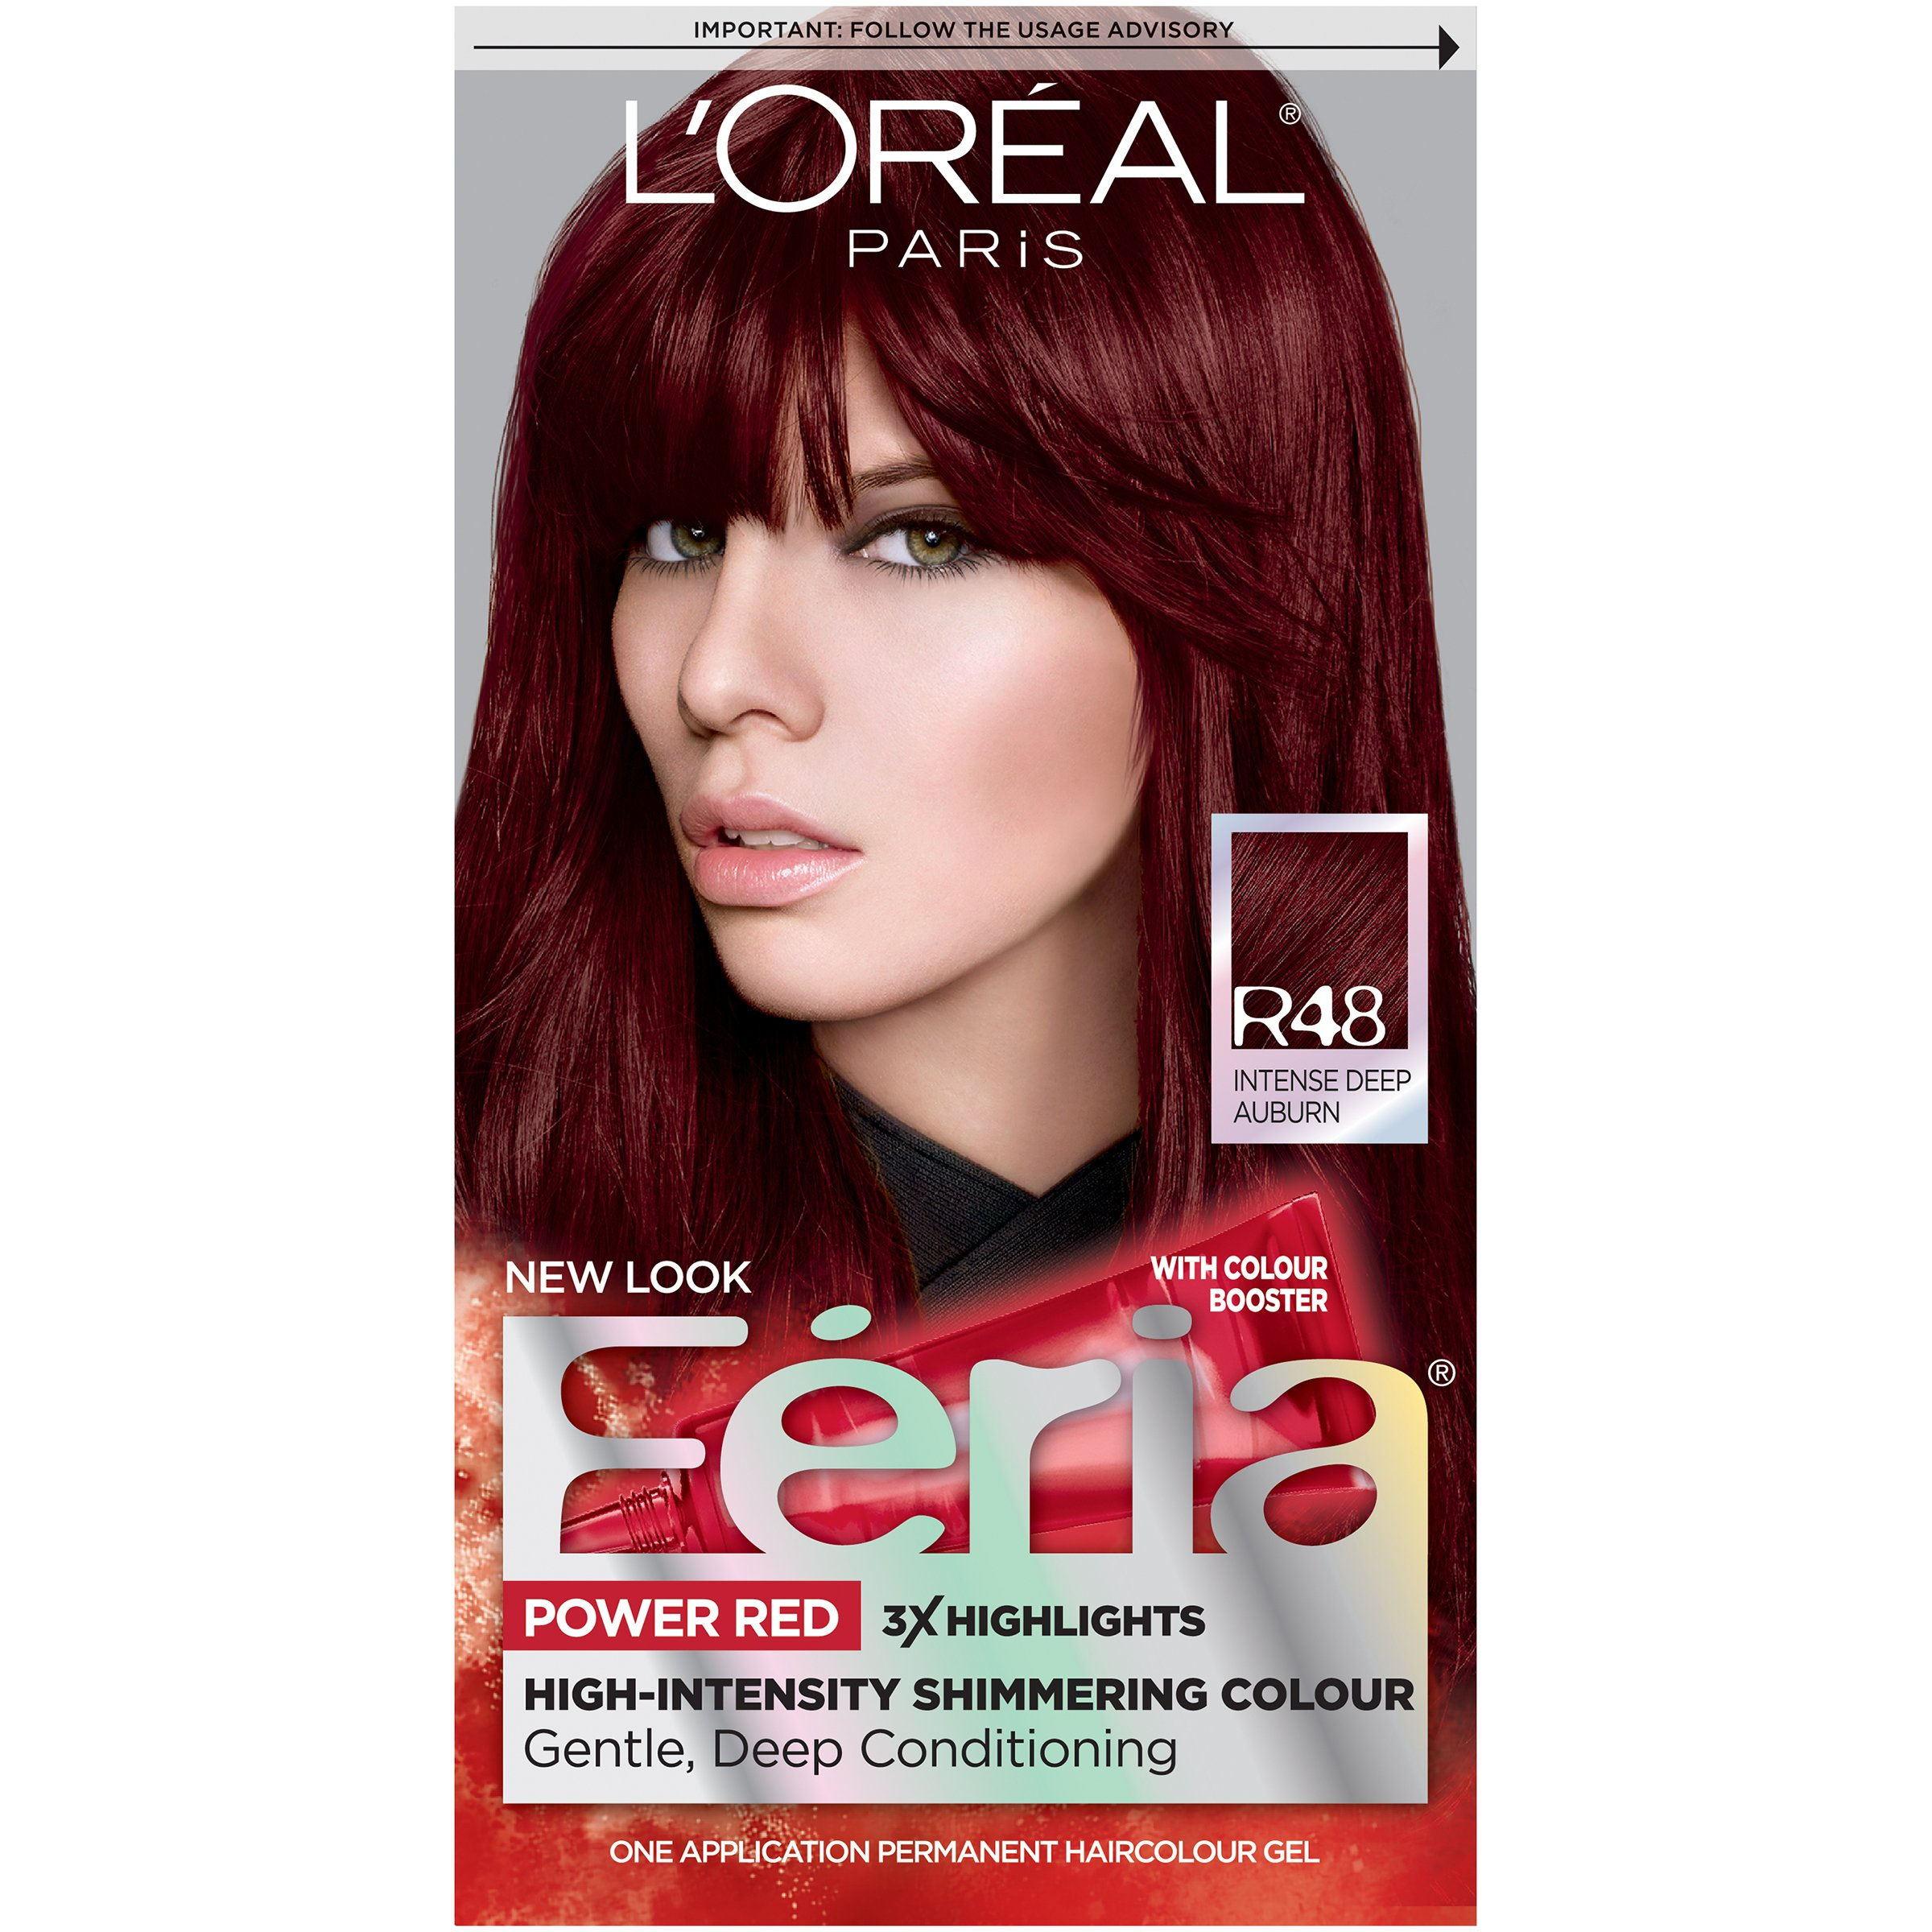 Amazon.com : L'Oréal Paris Feria Permanent Hair Color, R57 ...